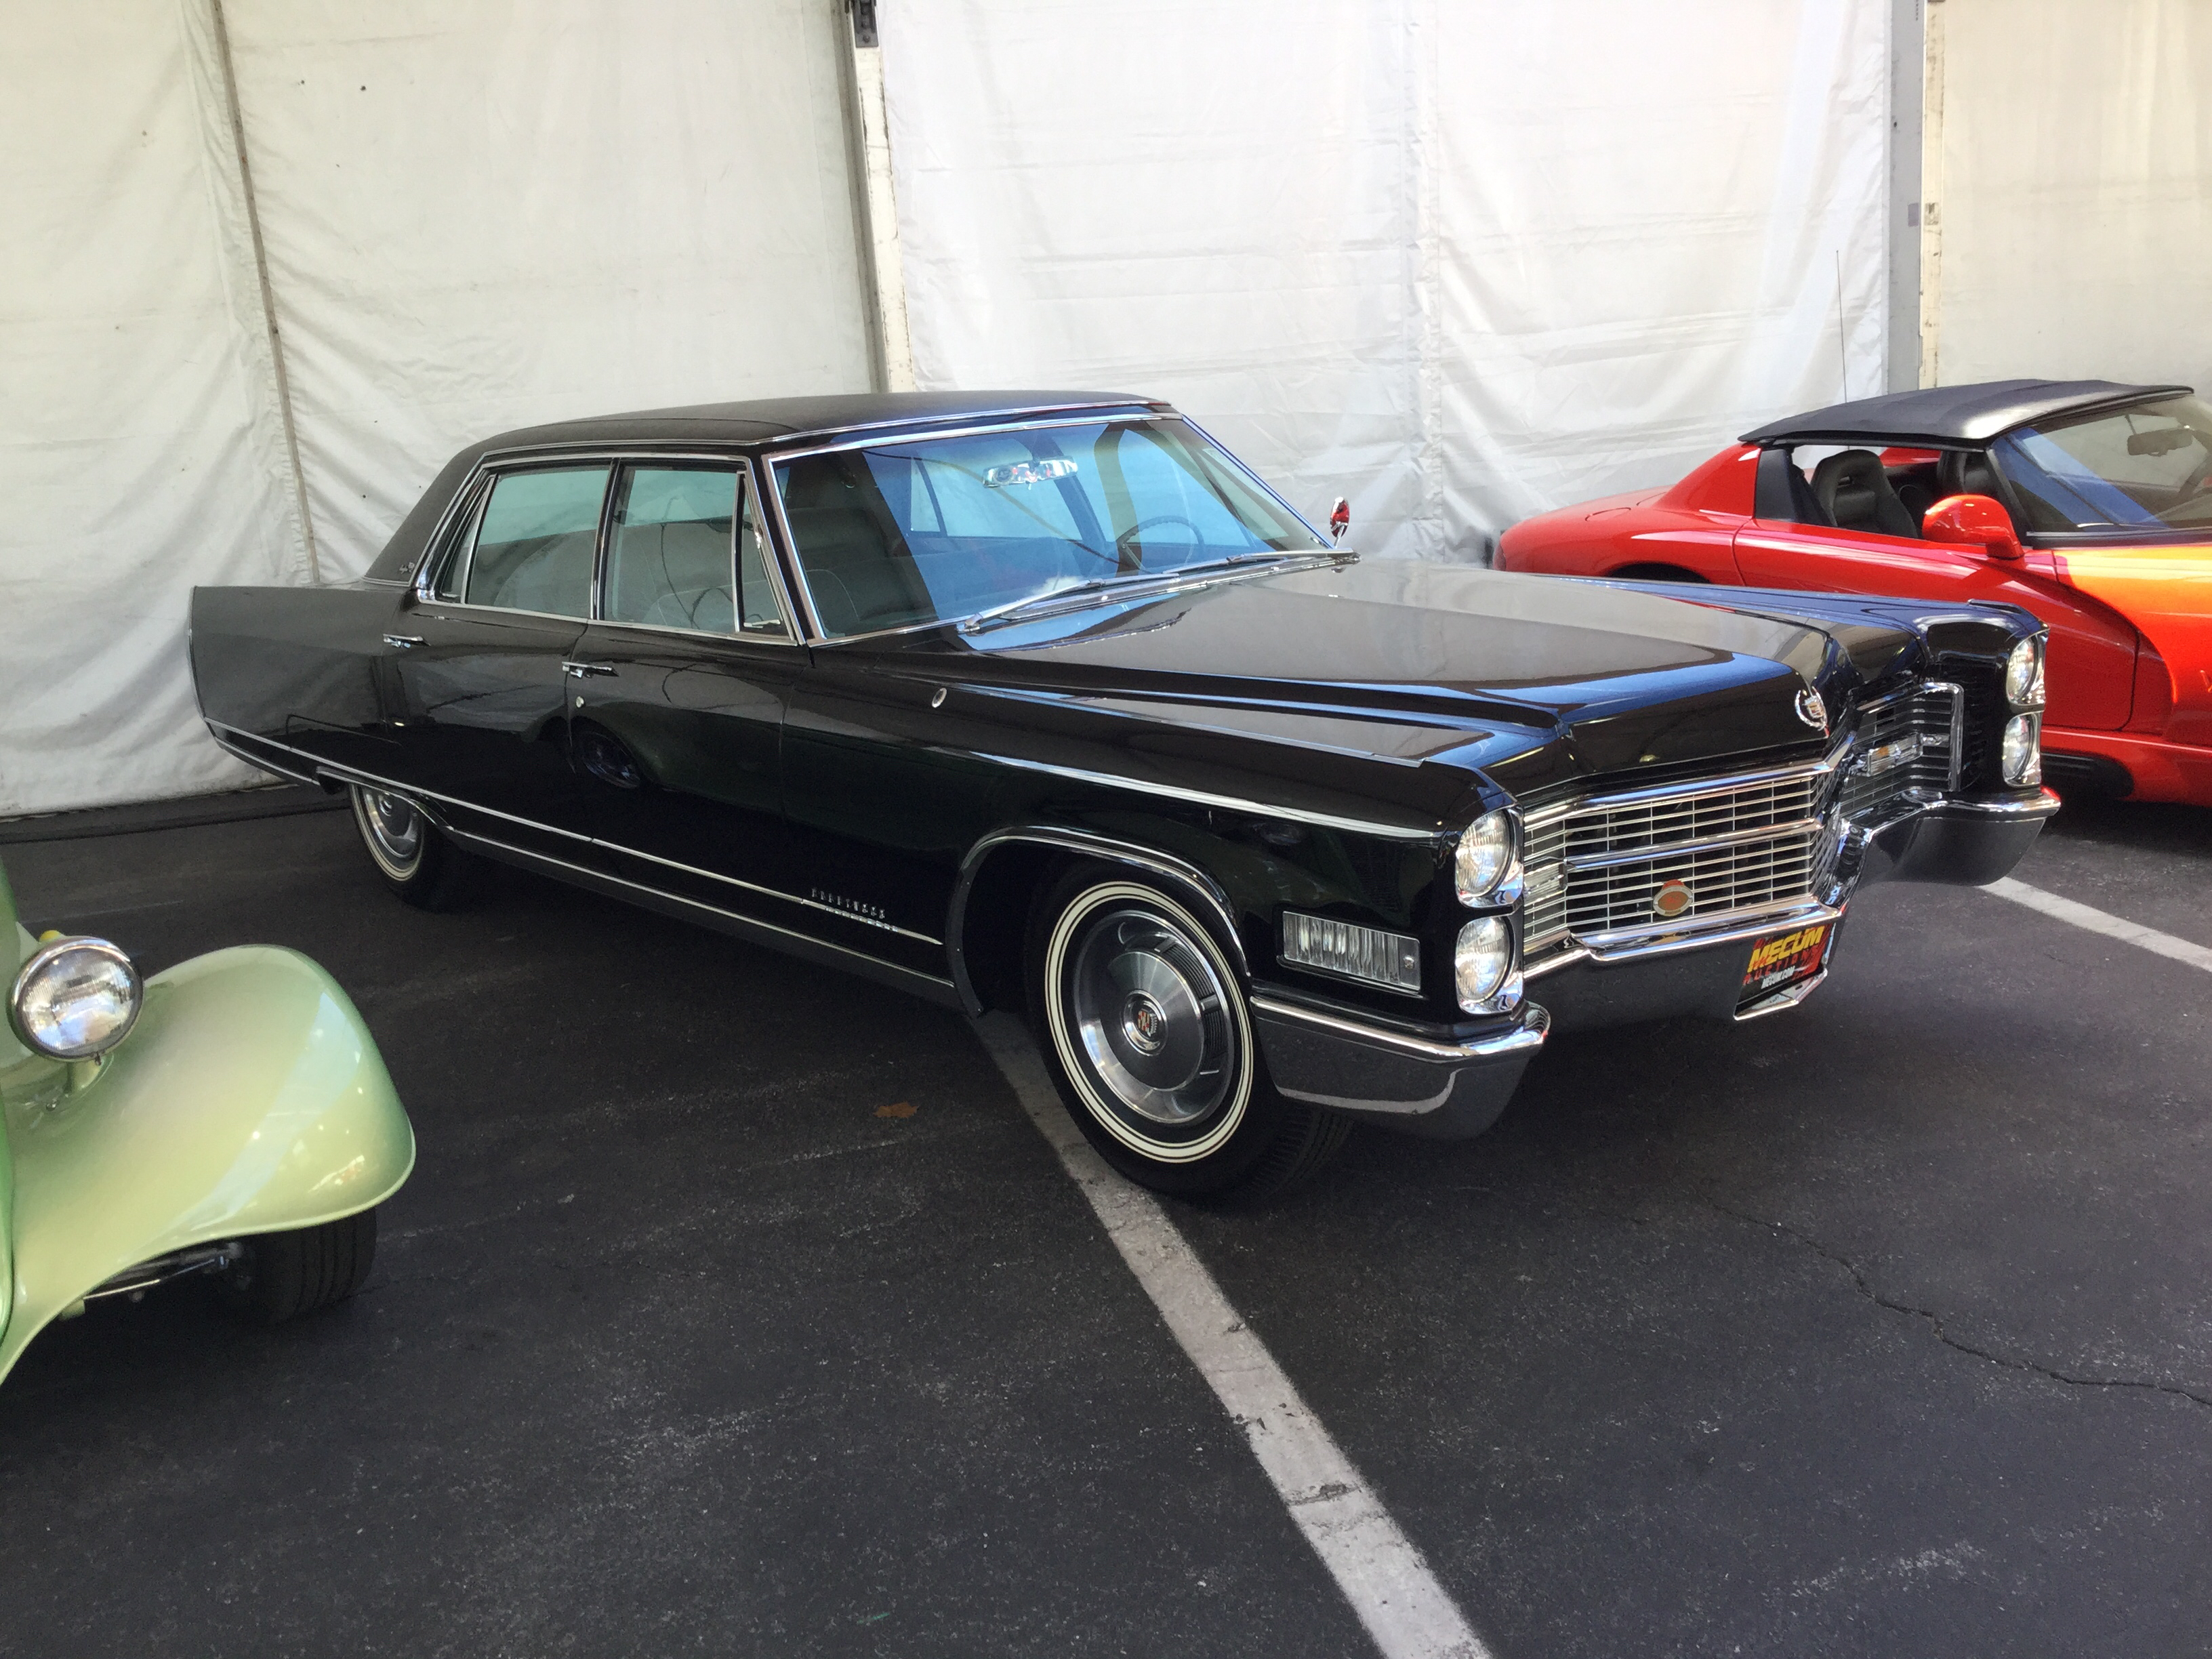 1966 cadillac fleetwood 60 special values | hagerty valuation tool®